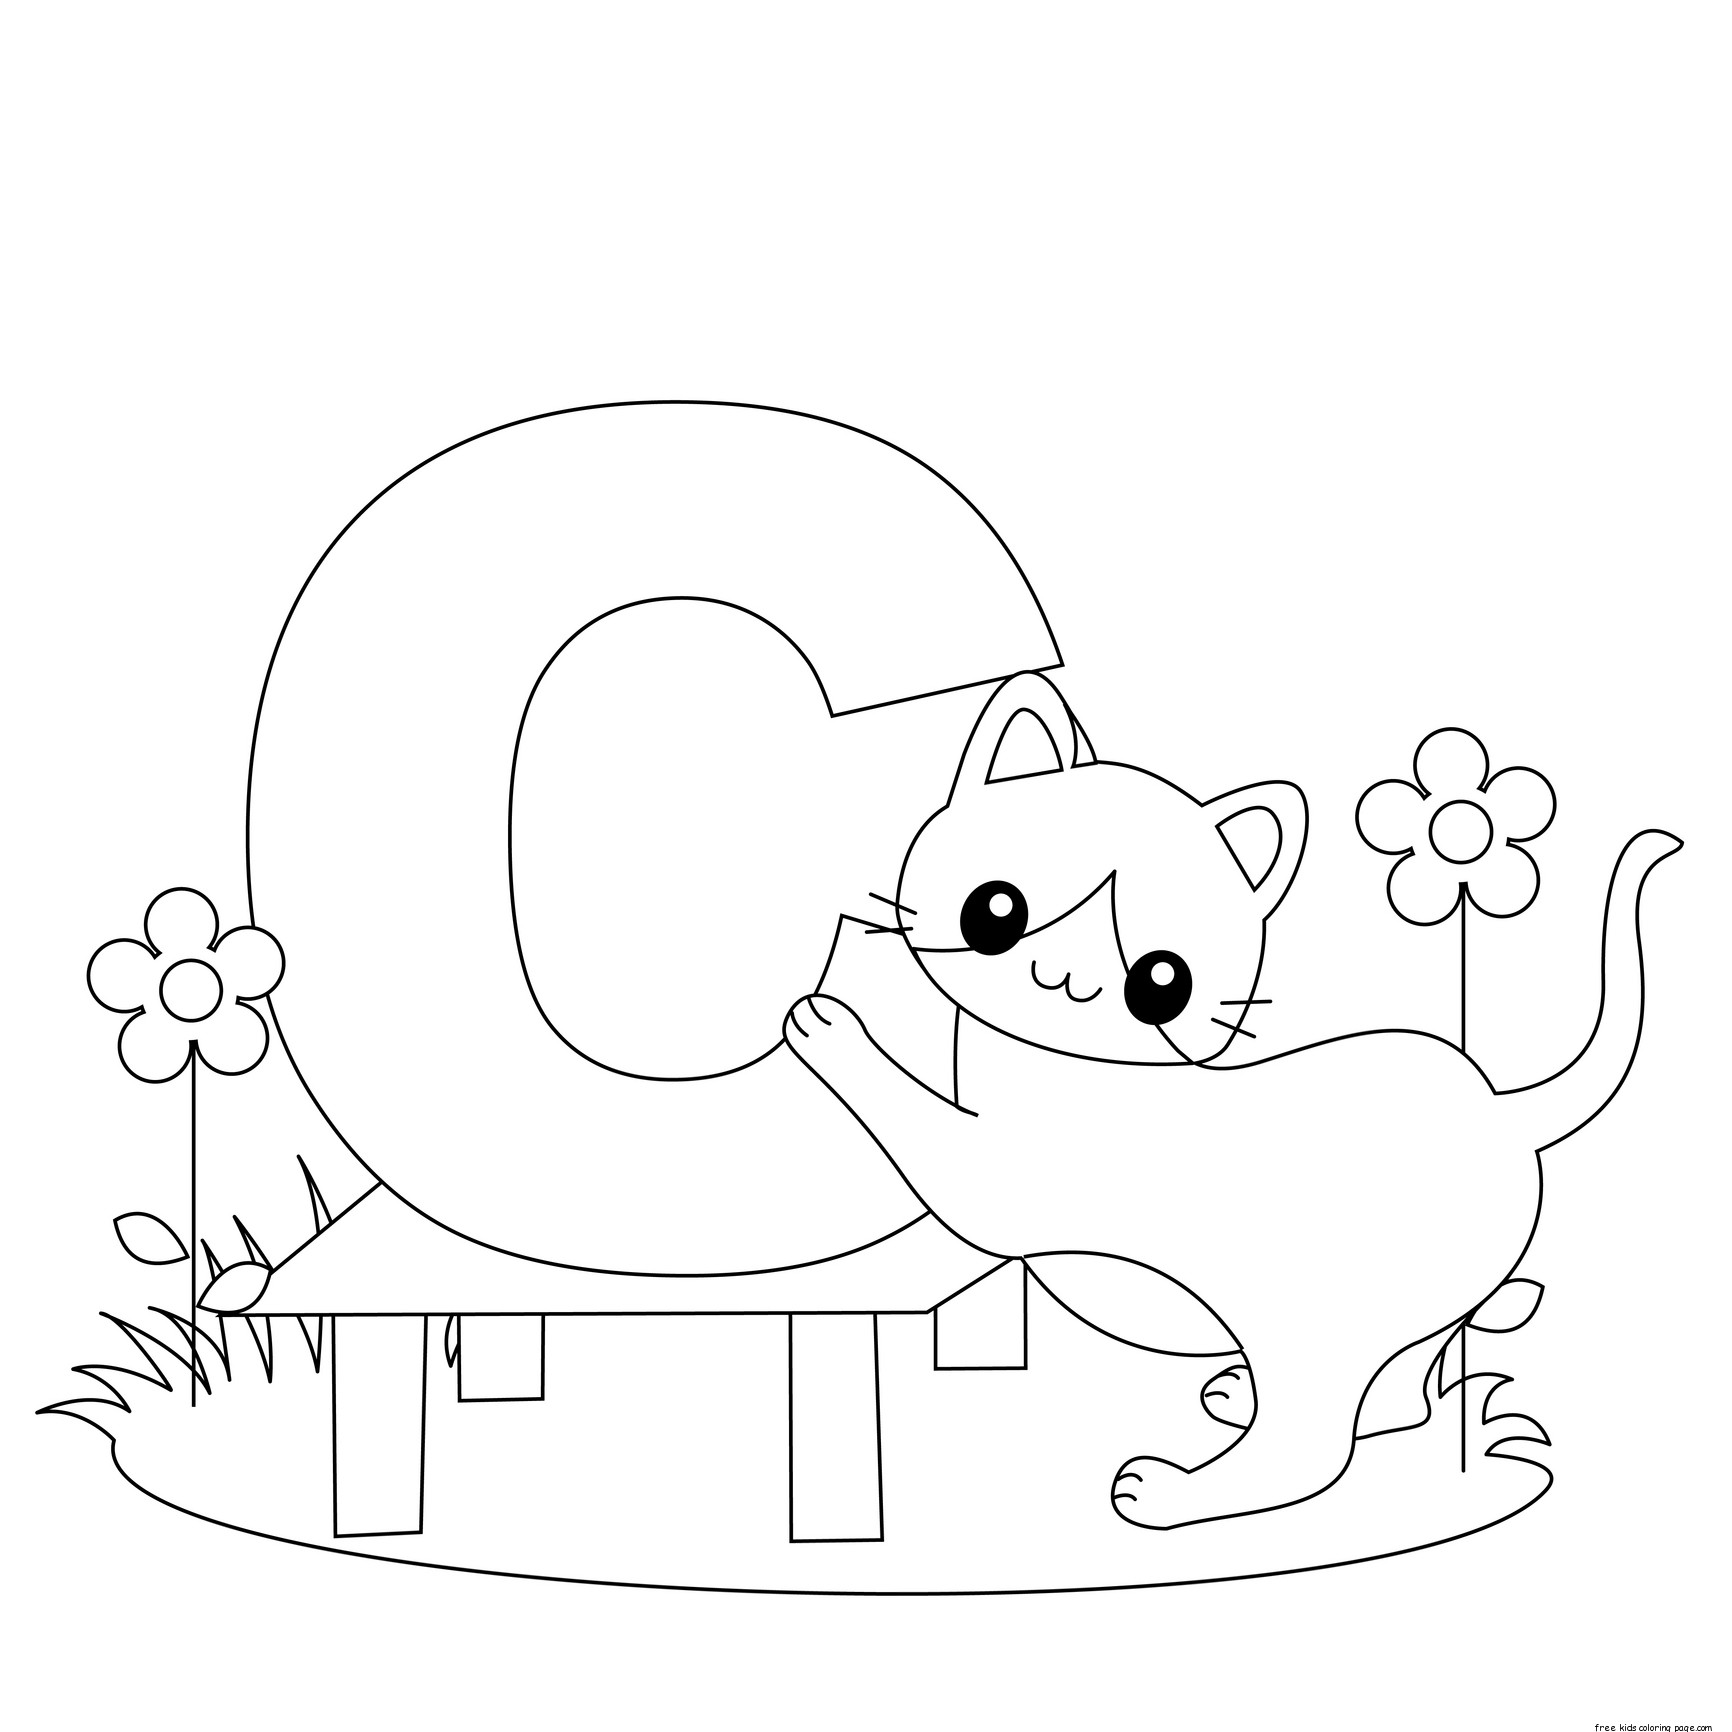 Printable alphabet worksheets letter c for cat for for C is for cat coloring page